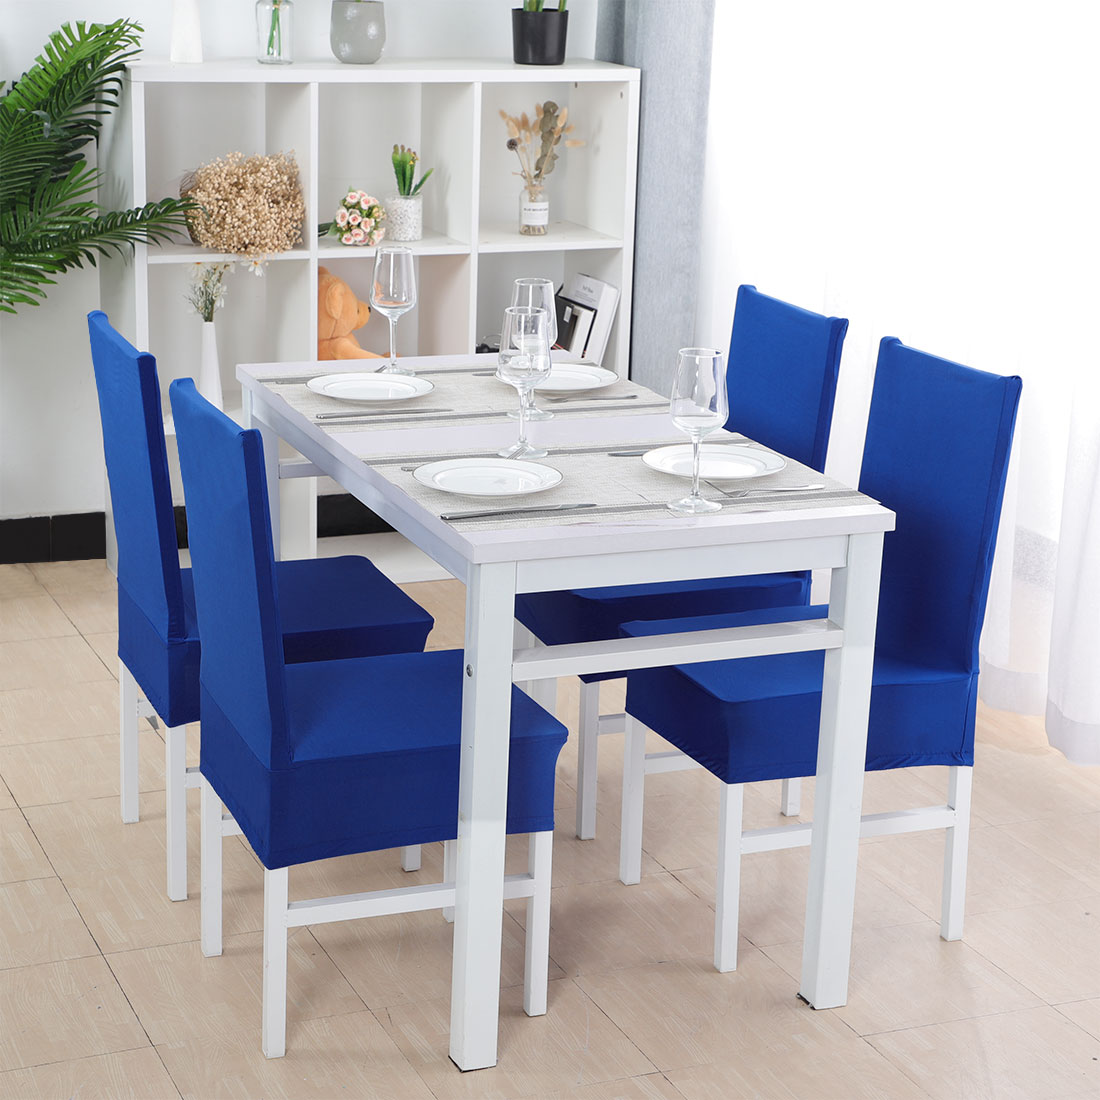 PiccoCasa Stretch Spandex Dining Chair Covers Set of 4, Solid Color